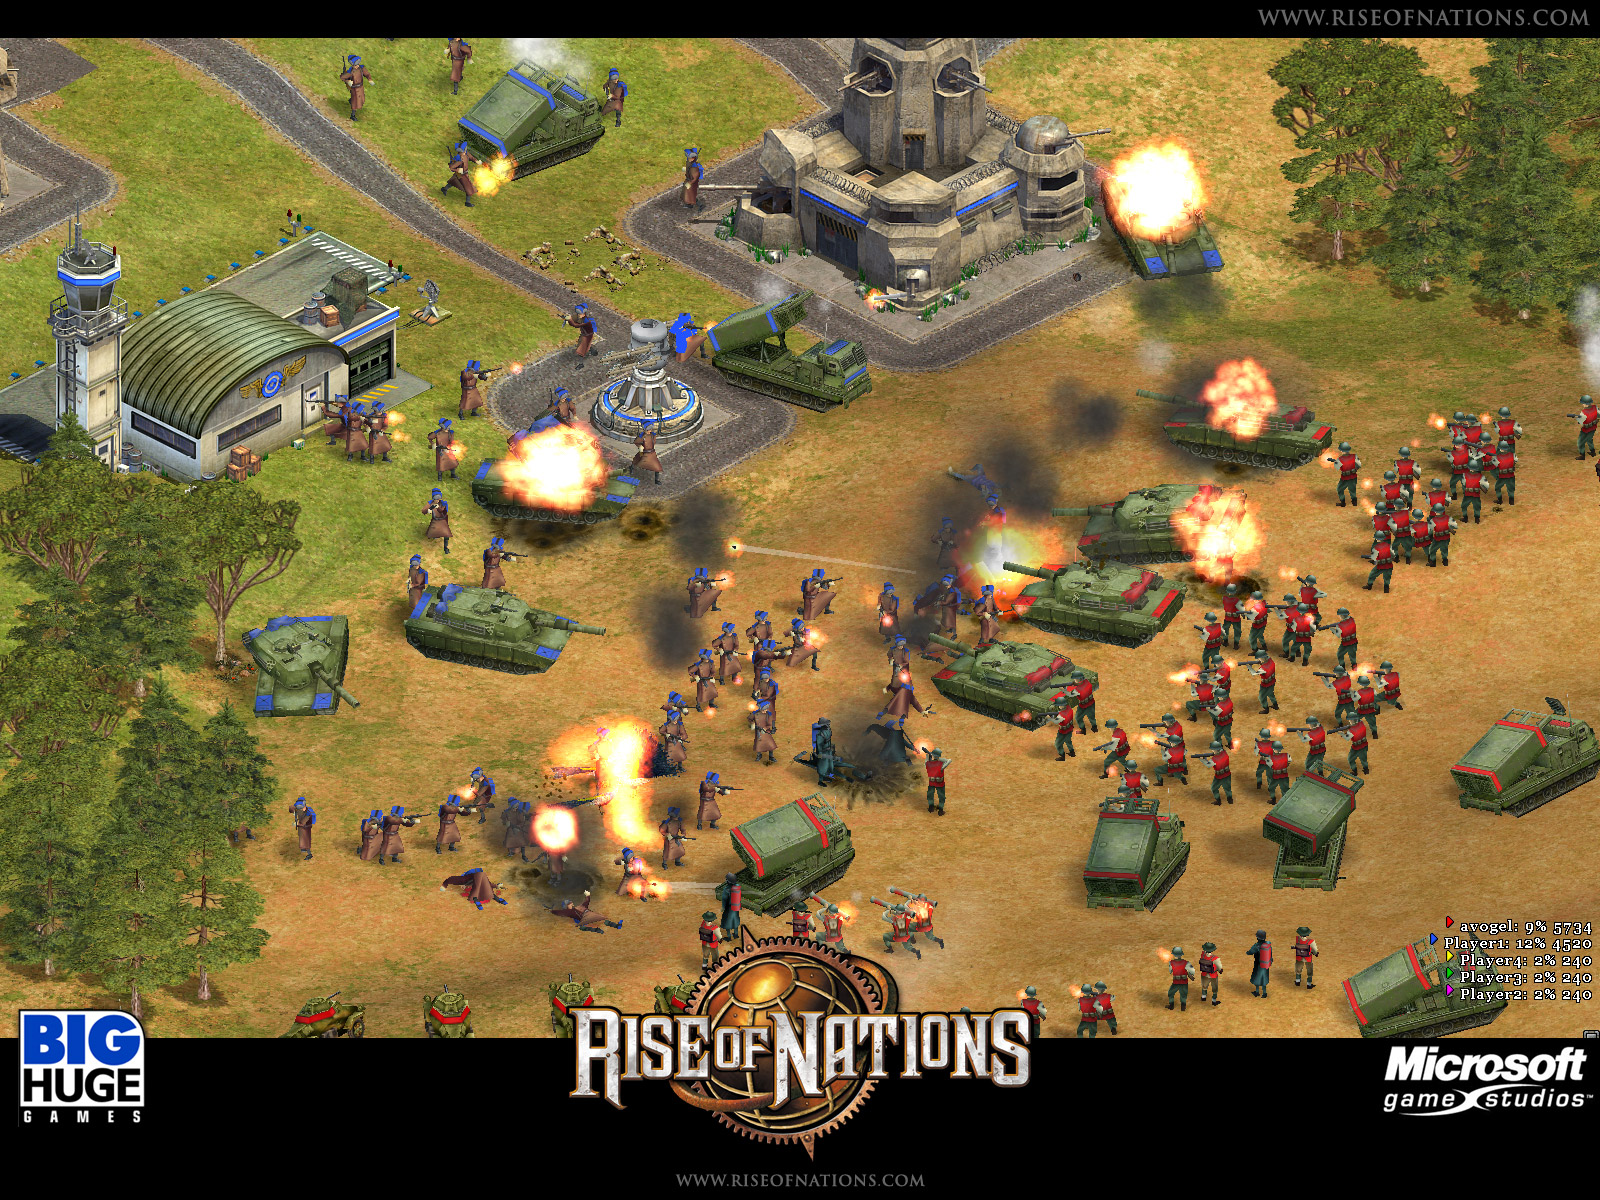 How To Run Rise Of Nations In Widescreen Resolution In